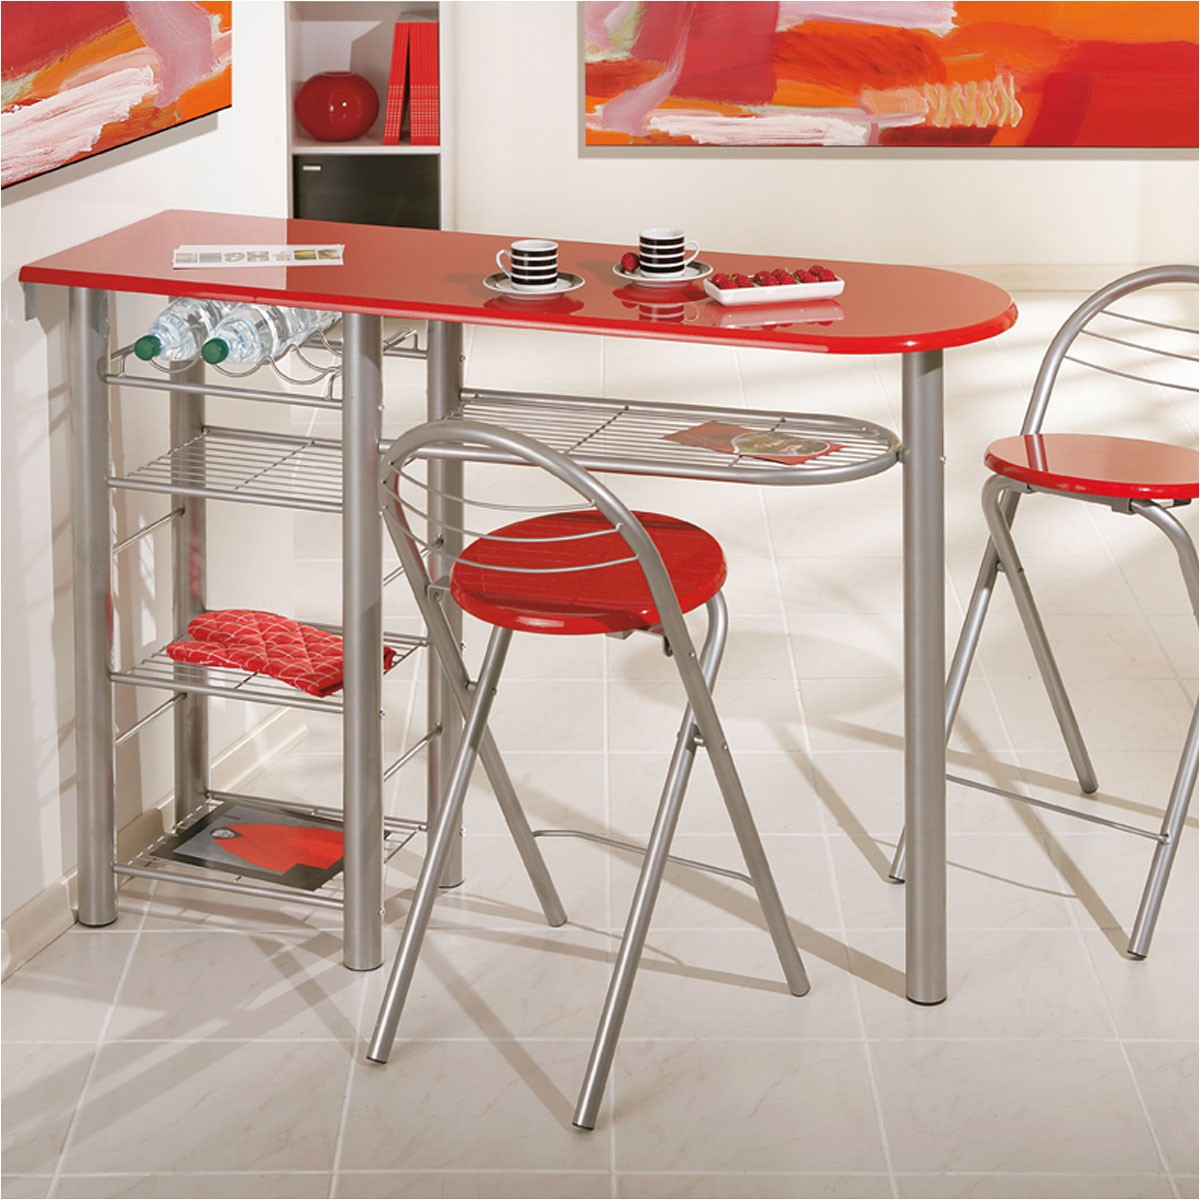 Table cuisine avec tabouret bar cuisine id es de for Table cuisine bar